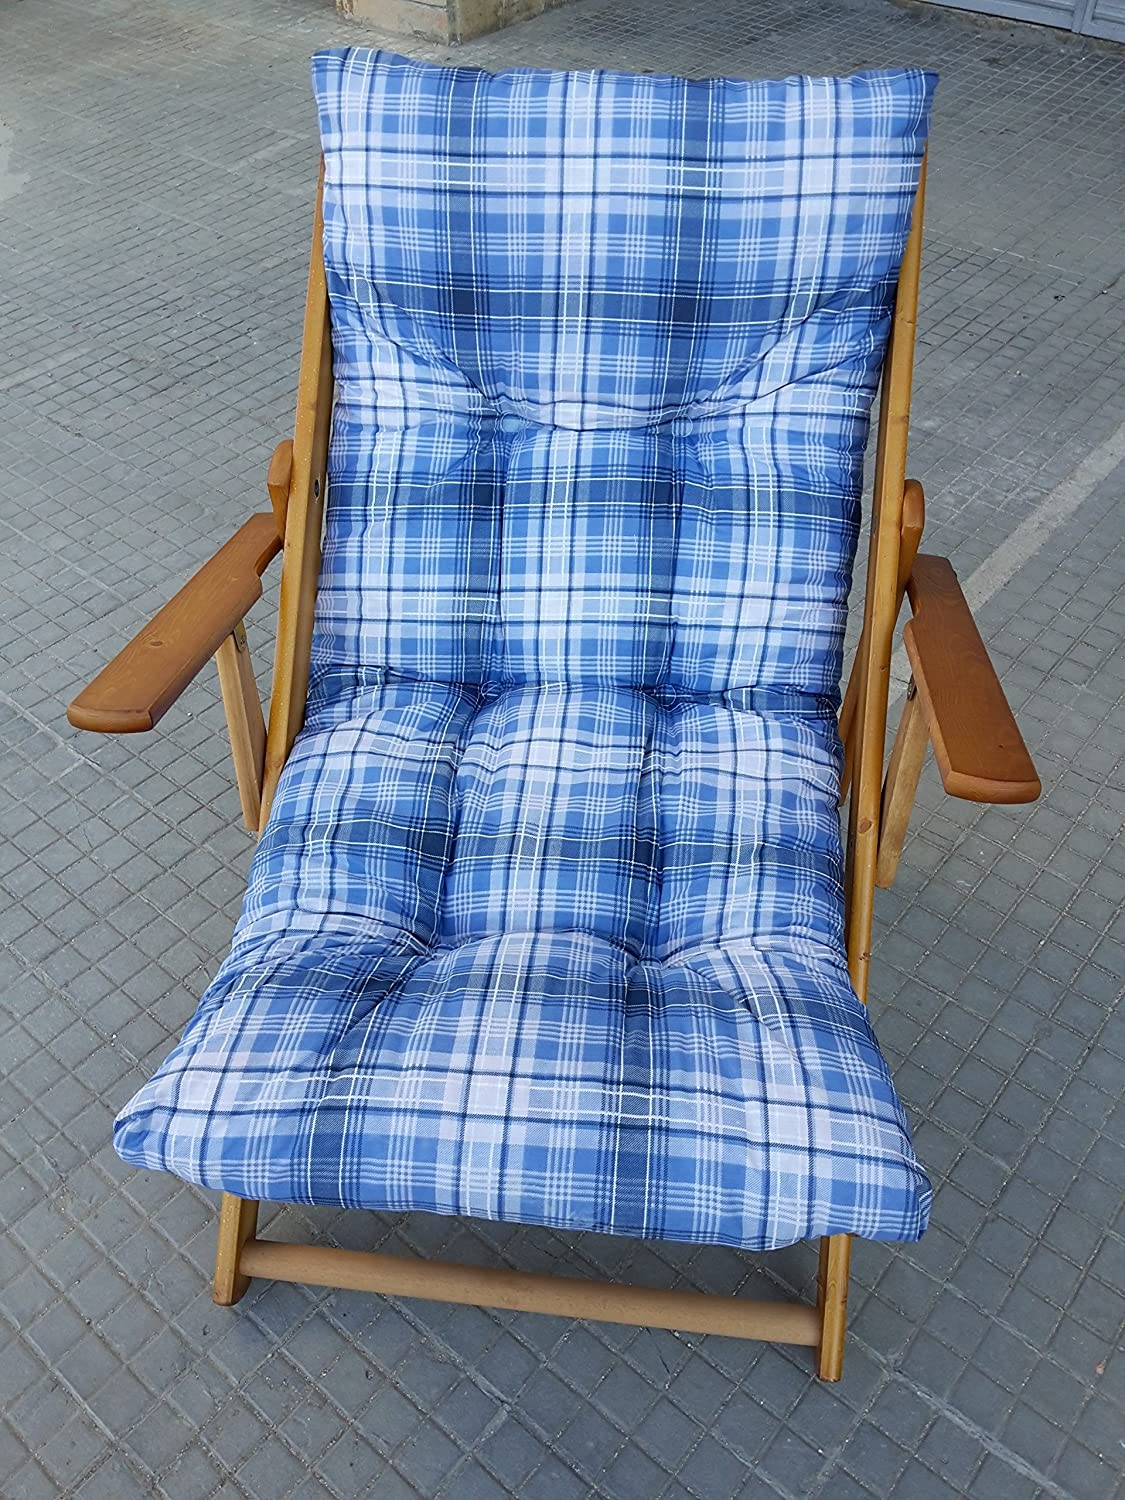 Spare Cushions Filled Cushion for Lounger Chair Relax Ripstop Fabric... No brand